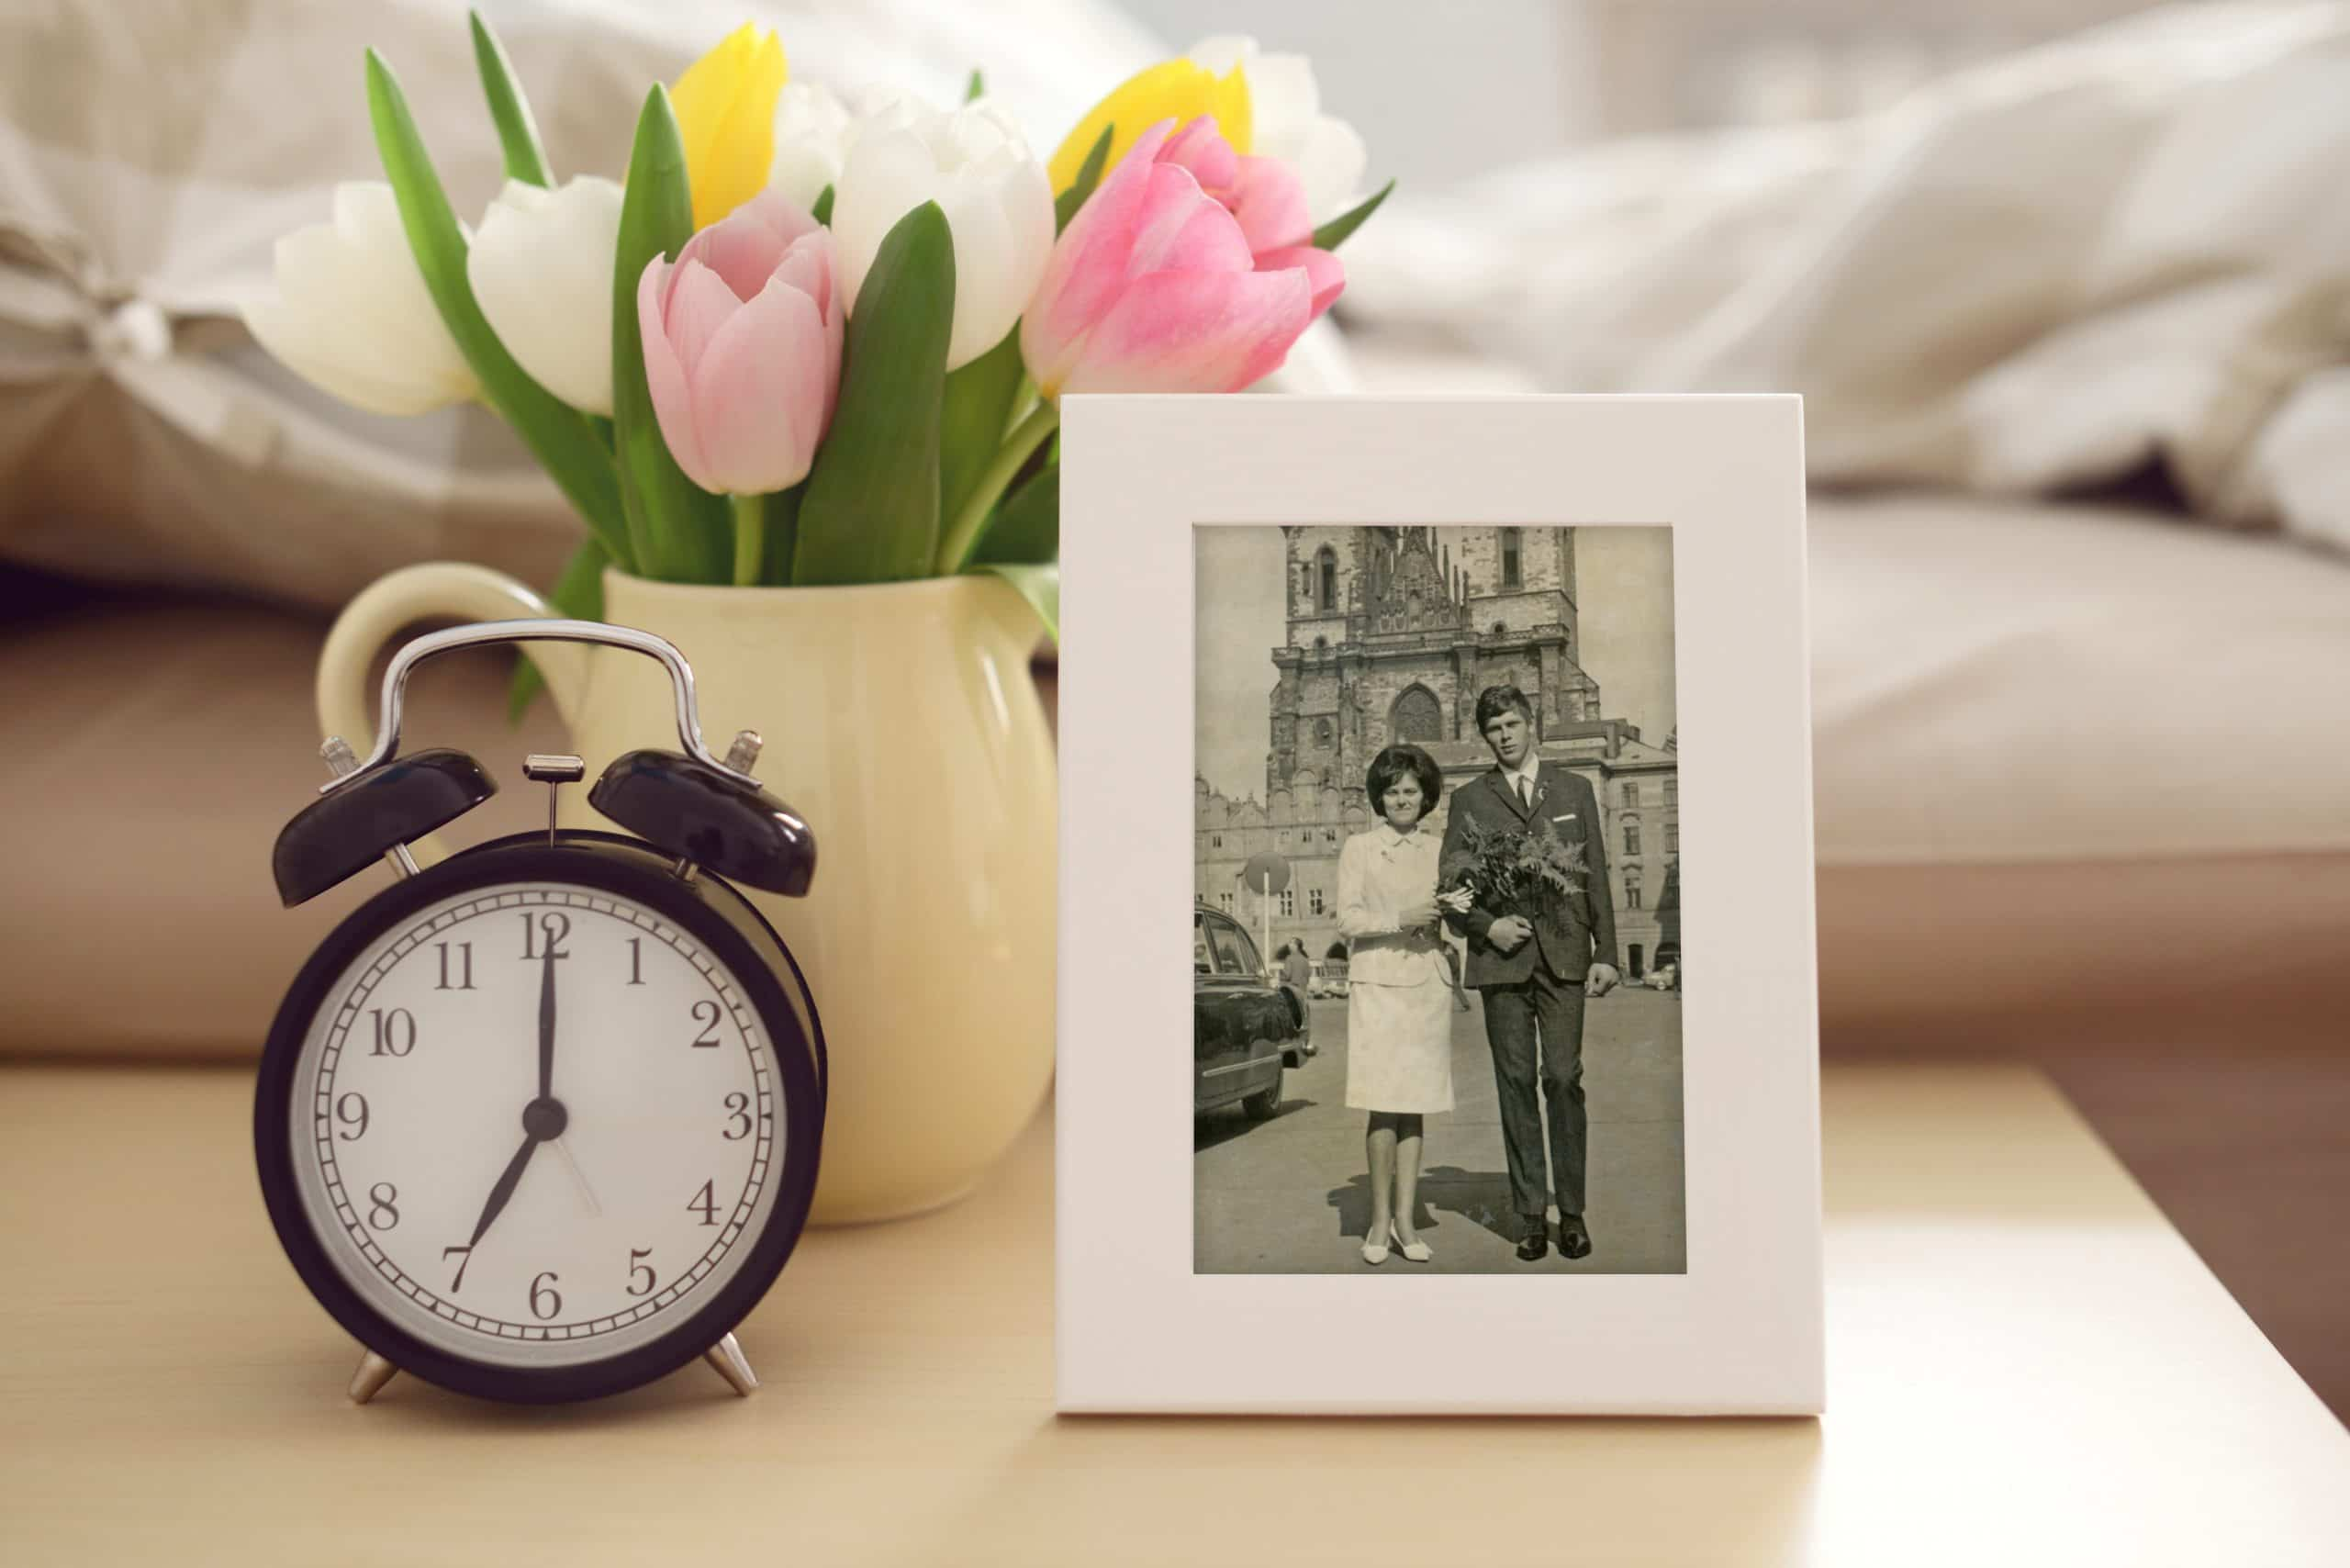 Analogue Clock, Frame Photo and Tulips on nightstand beside bed